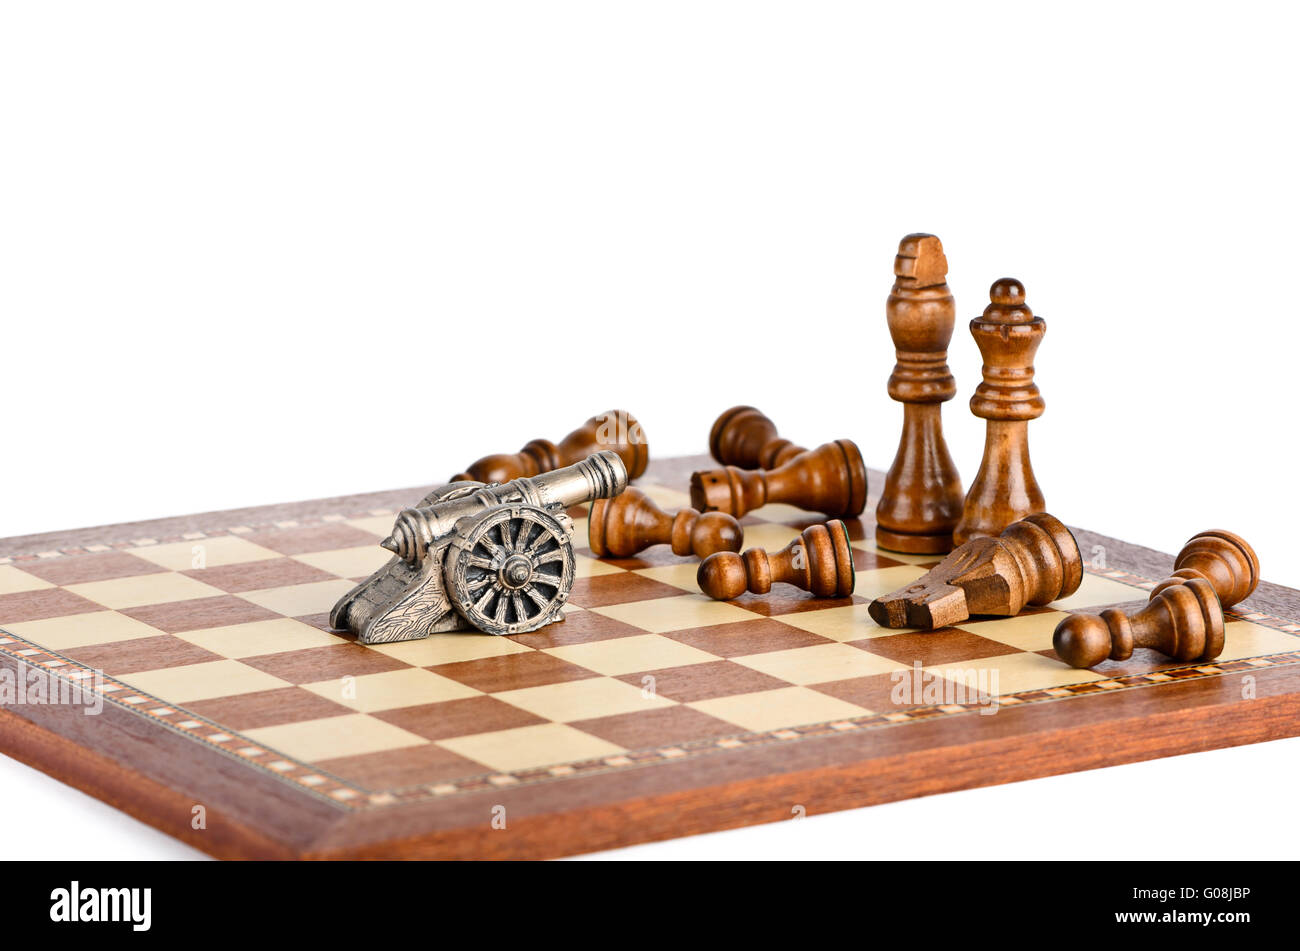 Battle with a gun on a chess board - Stock Image